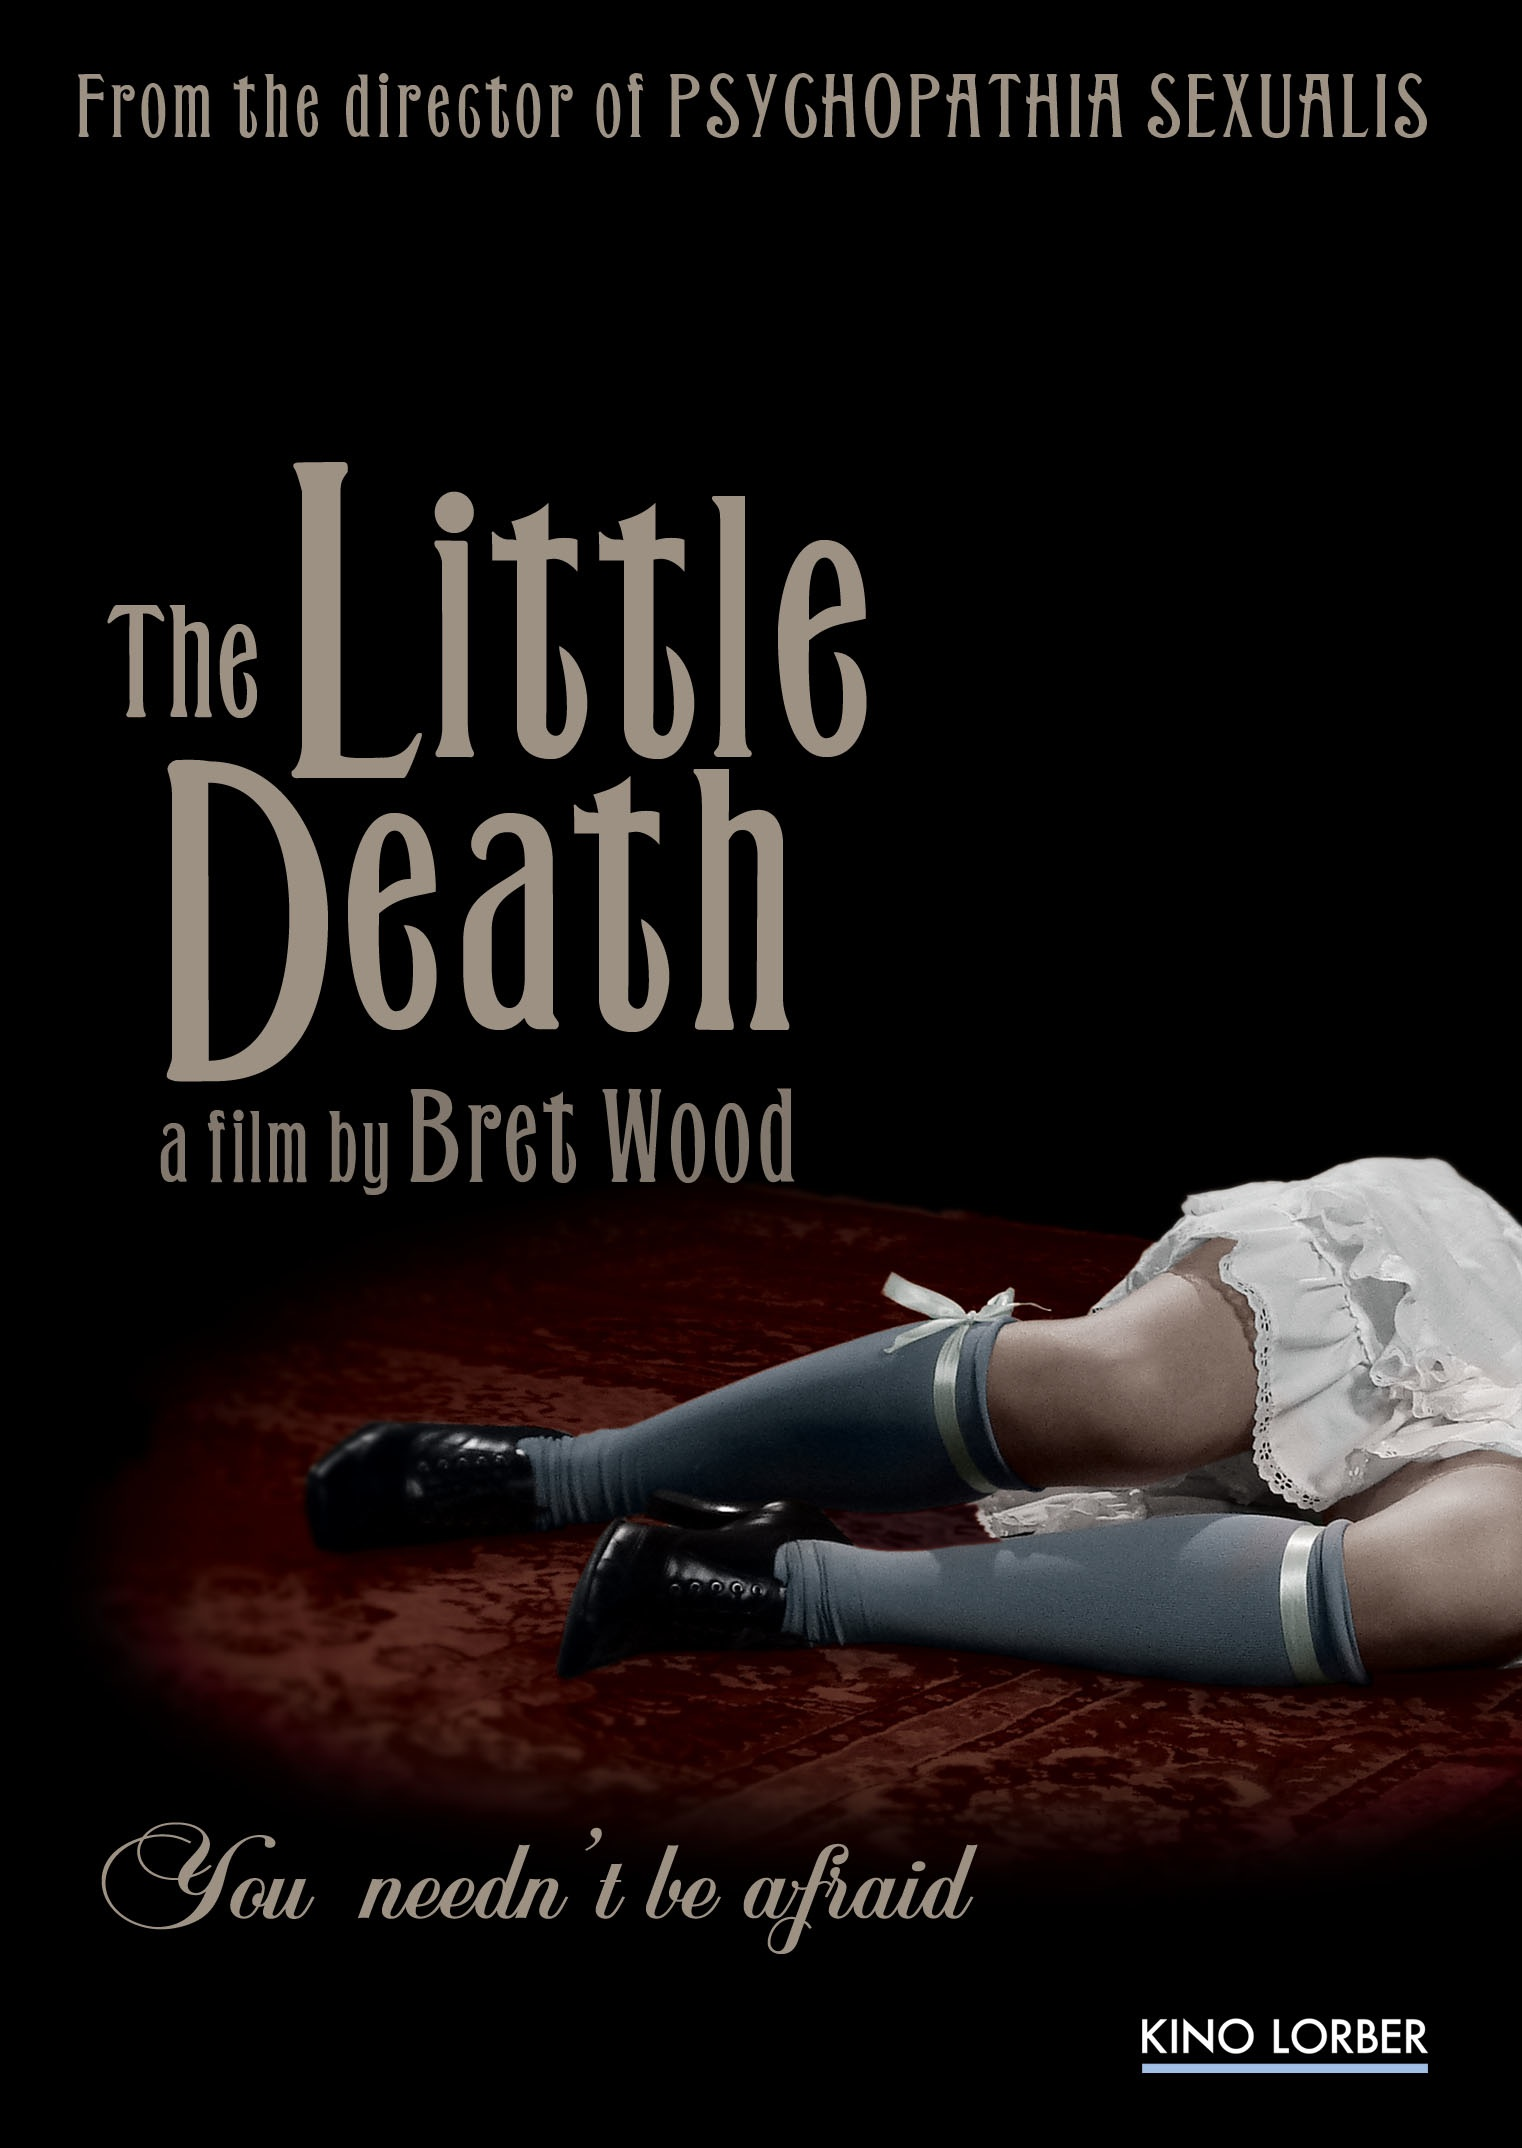 The Little Death (Unrated Director's Cut) - Kino Lorber